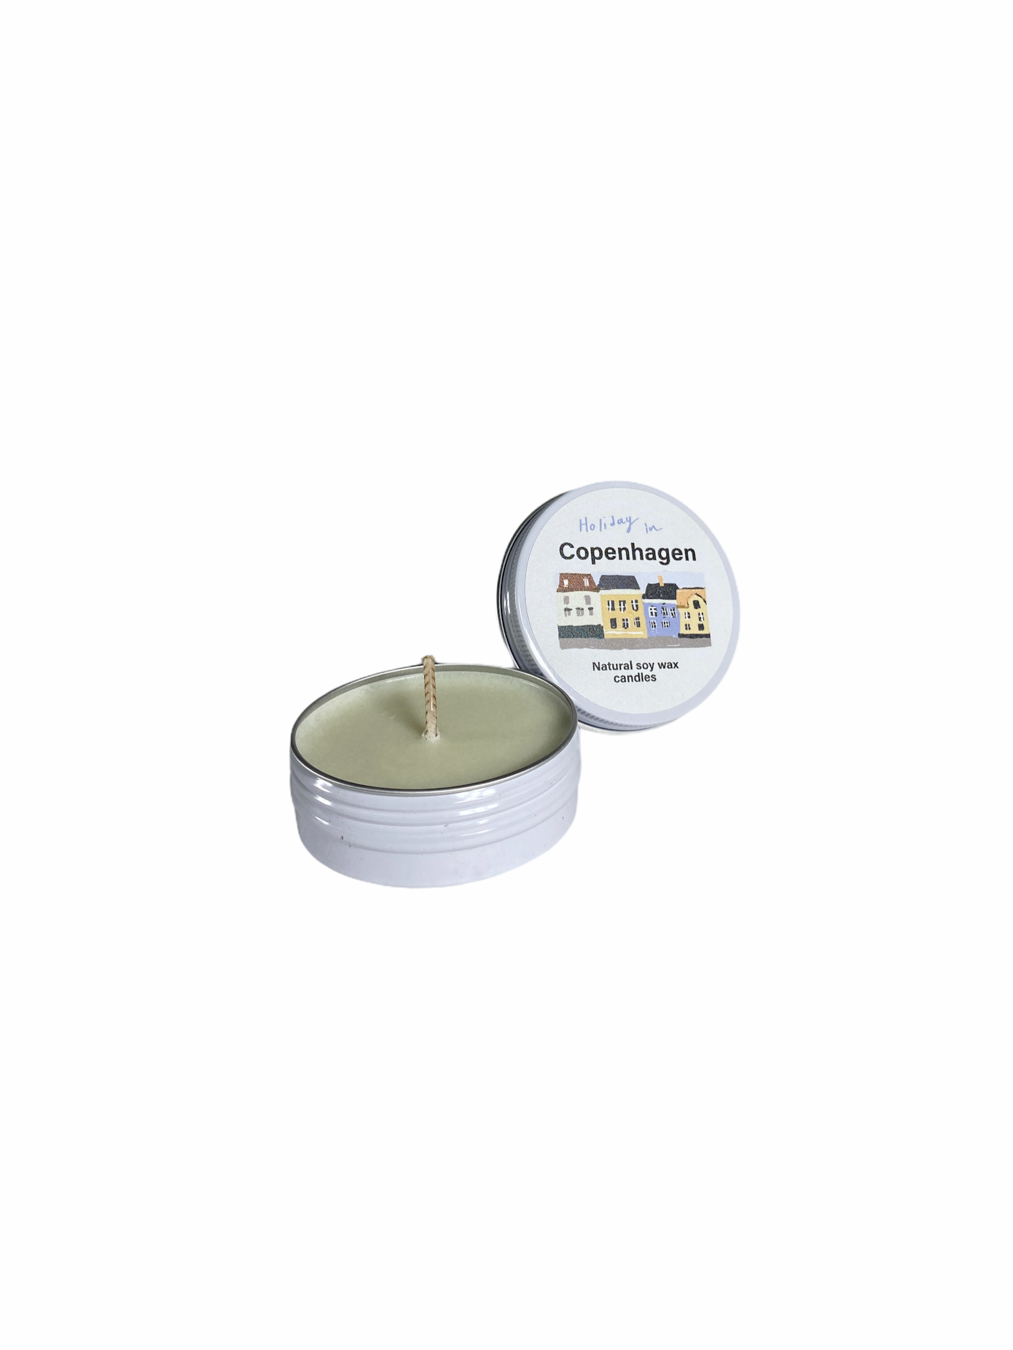 Holiday In Copenhagen Soy Wax Candle